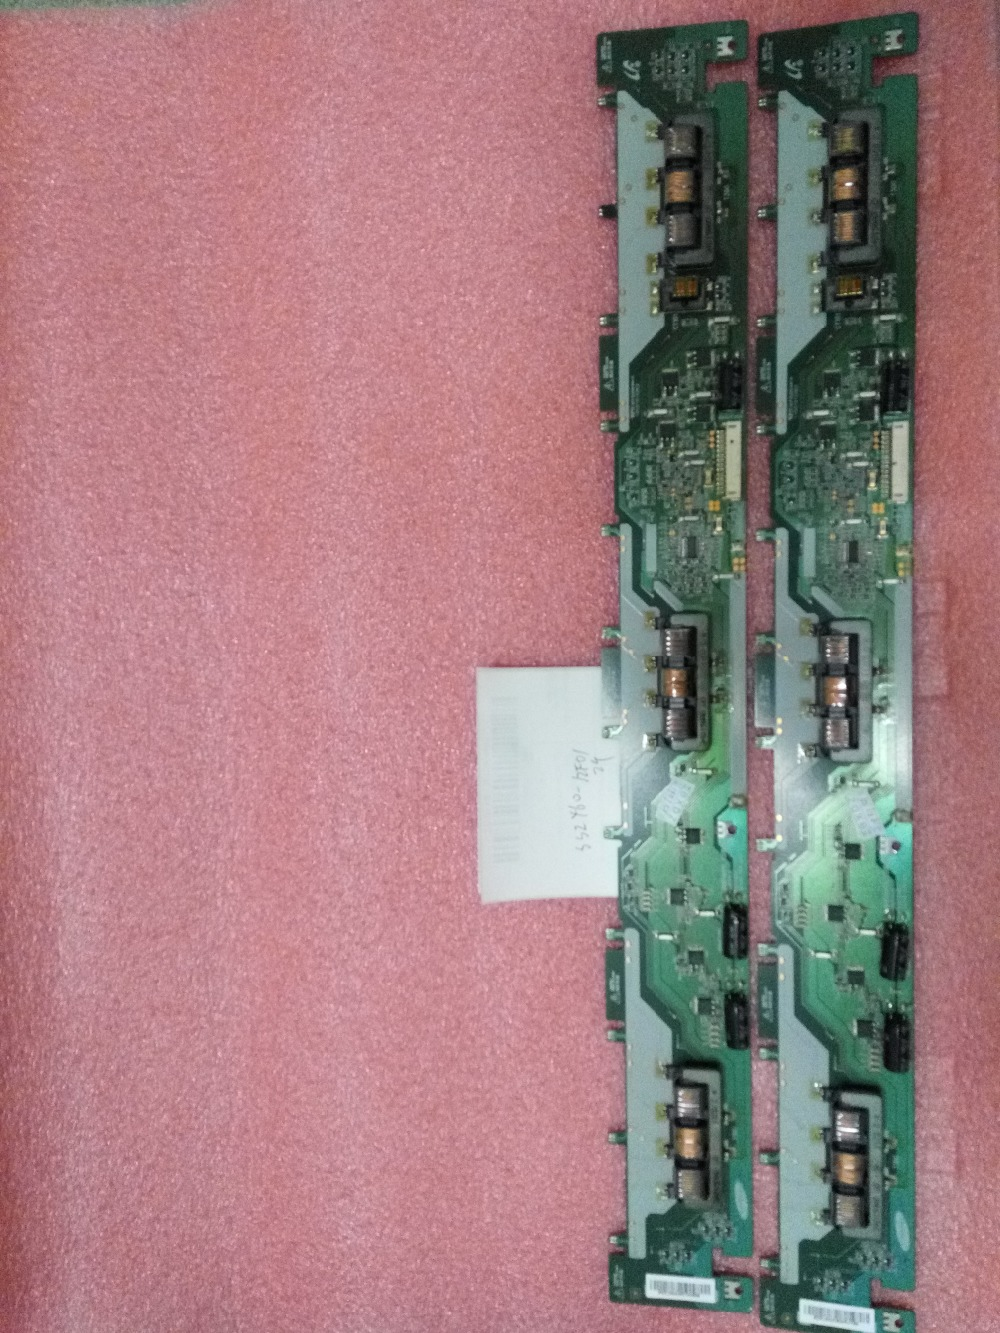 SSI460-12F01 SS1460-12F01 HIGH VOLTAGE Logic Board FOR Connect With KDL-46CX520 T-CON Connect Board